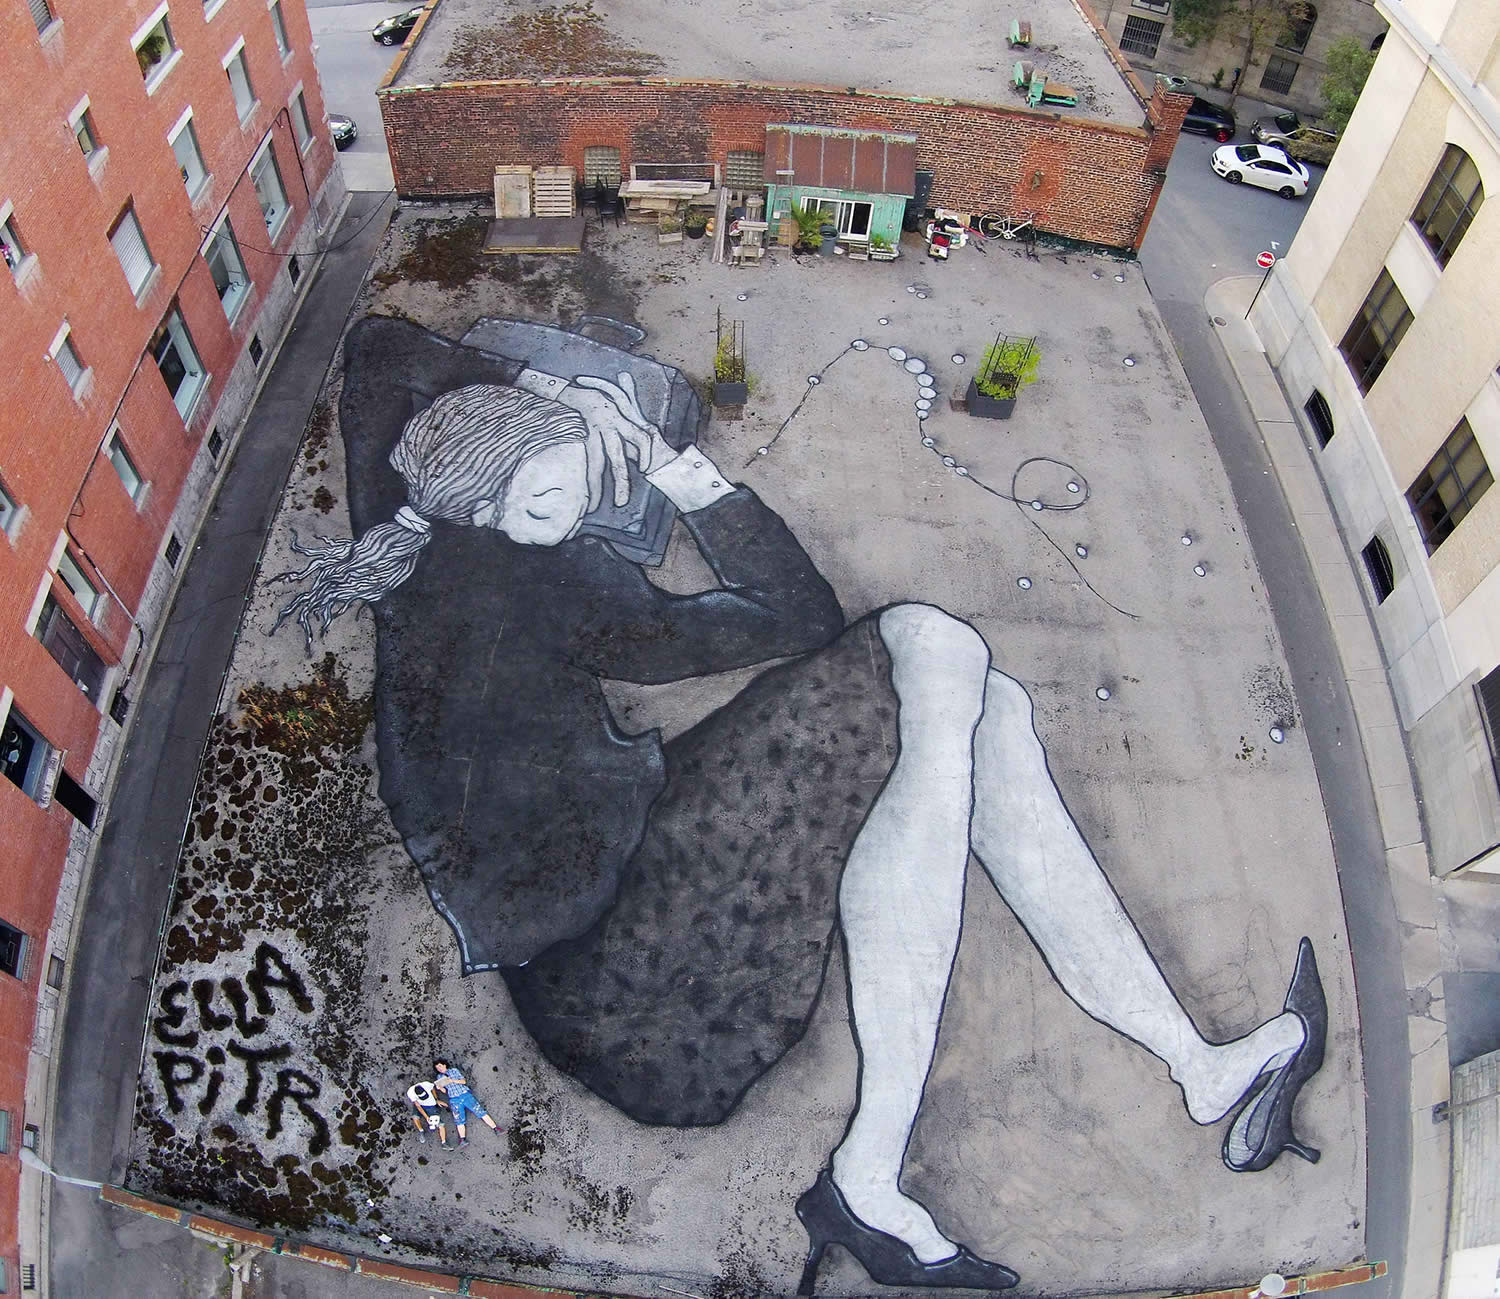 woman sleeping on rooftop, graffiti